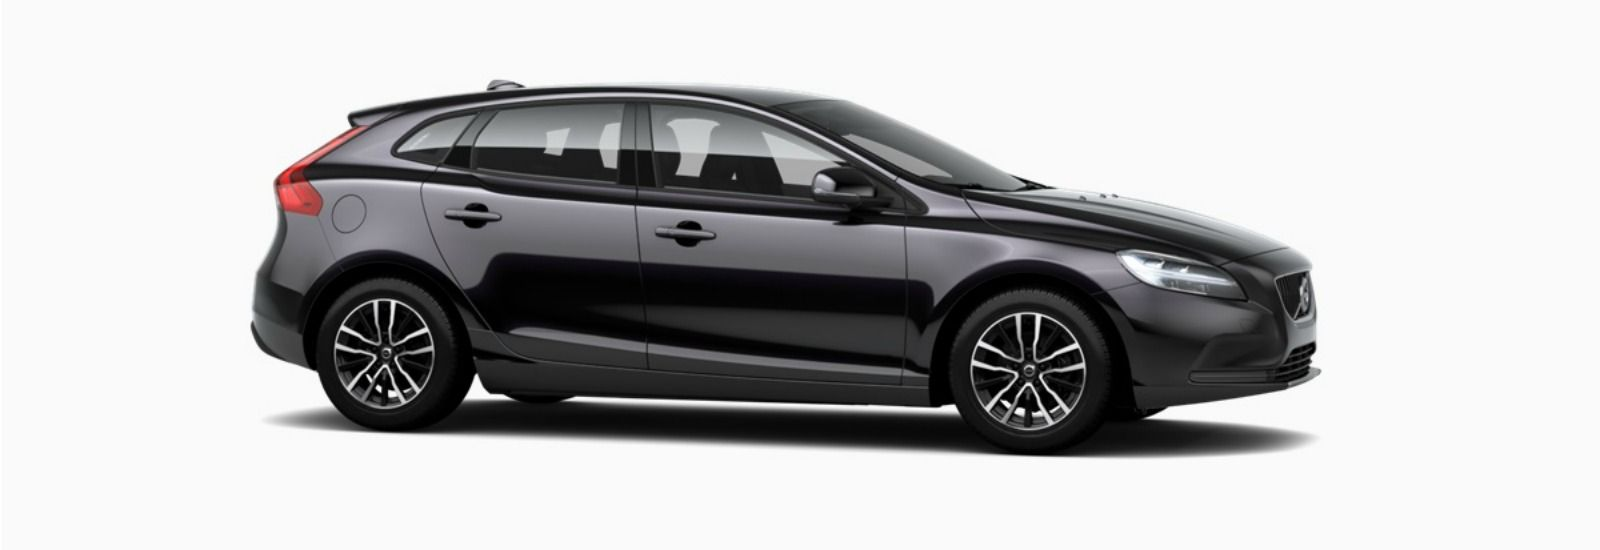 2018 volvo c40. Modren Volvo This Deeper Grey Metallic Option Should Hide Dirt Better And Not Require As  Frequent Washes Lighter Shades Itu0027s A Desirable Colour So Will Be In High  Intended 2018 Volvo C40